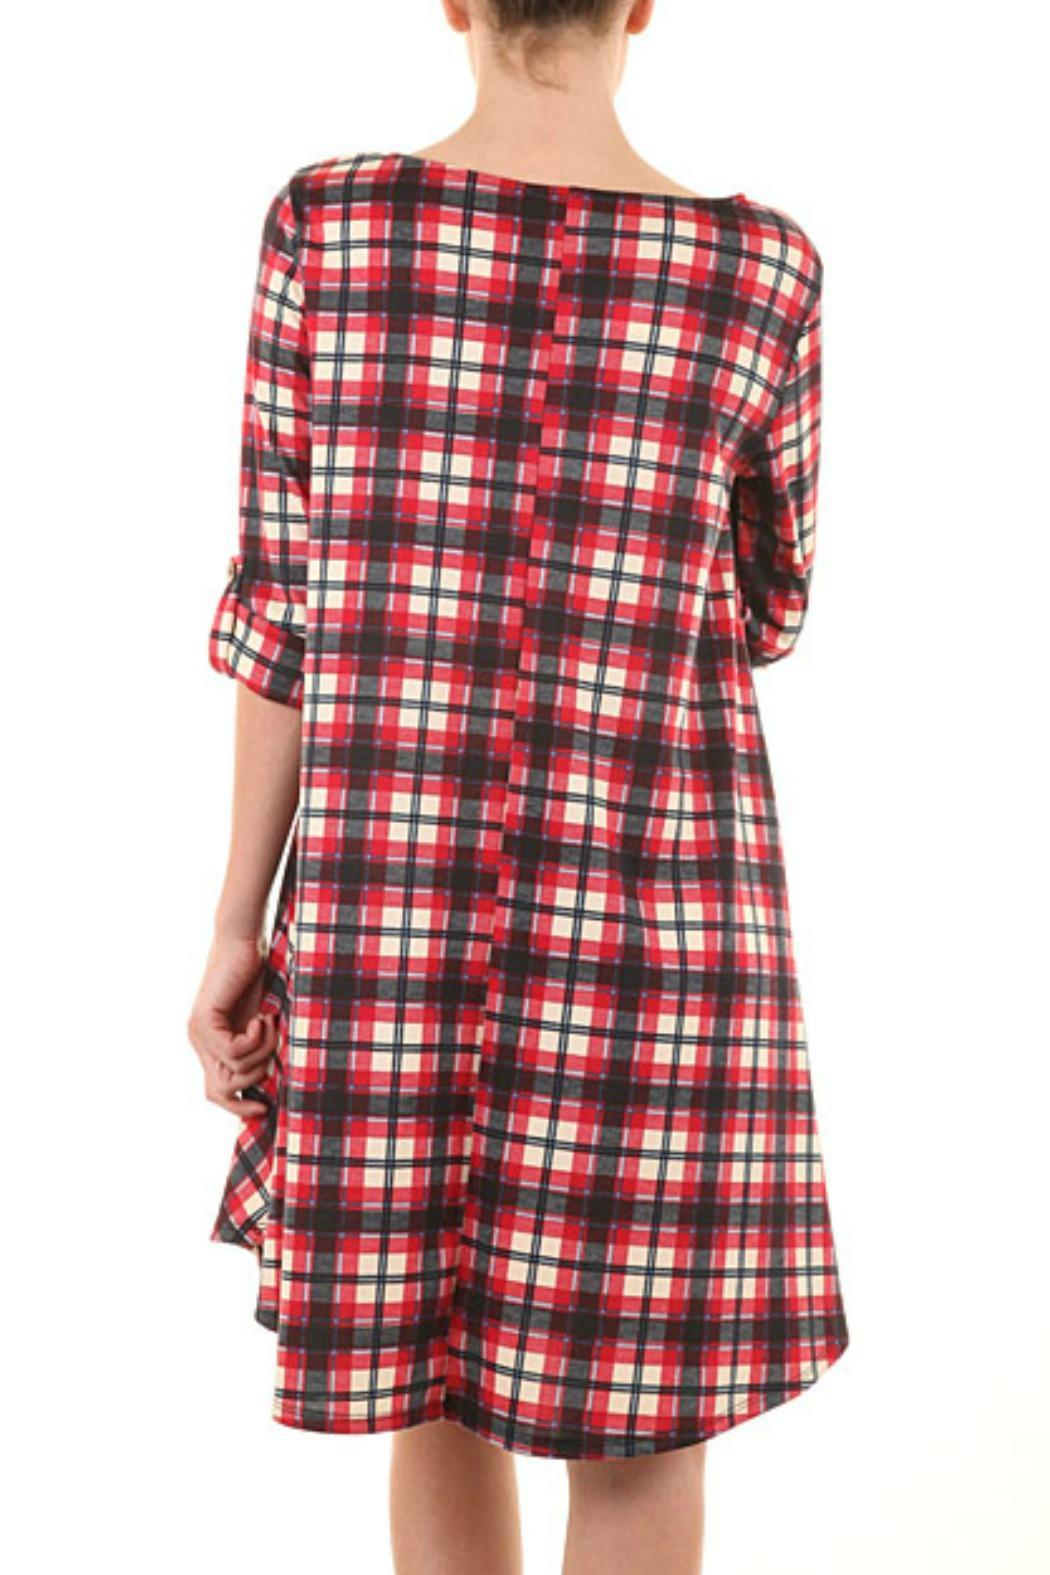 a.gain Red Plaid Dress - Front Cropped Image